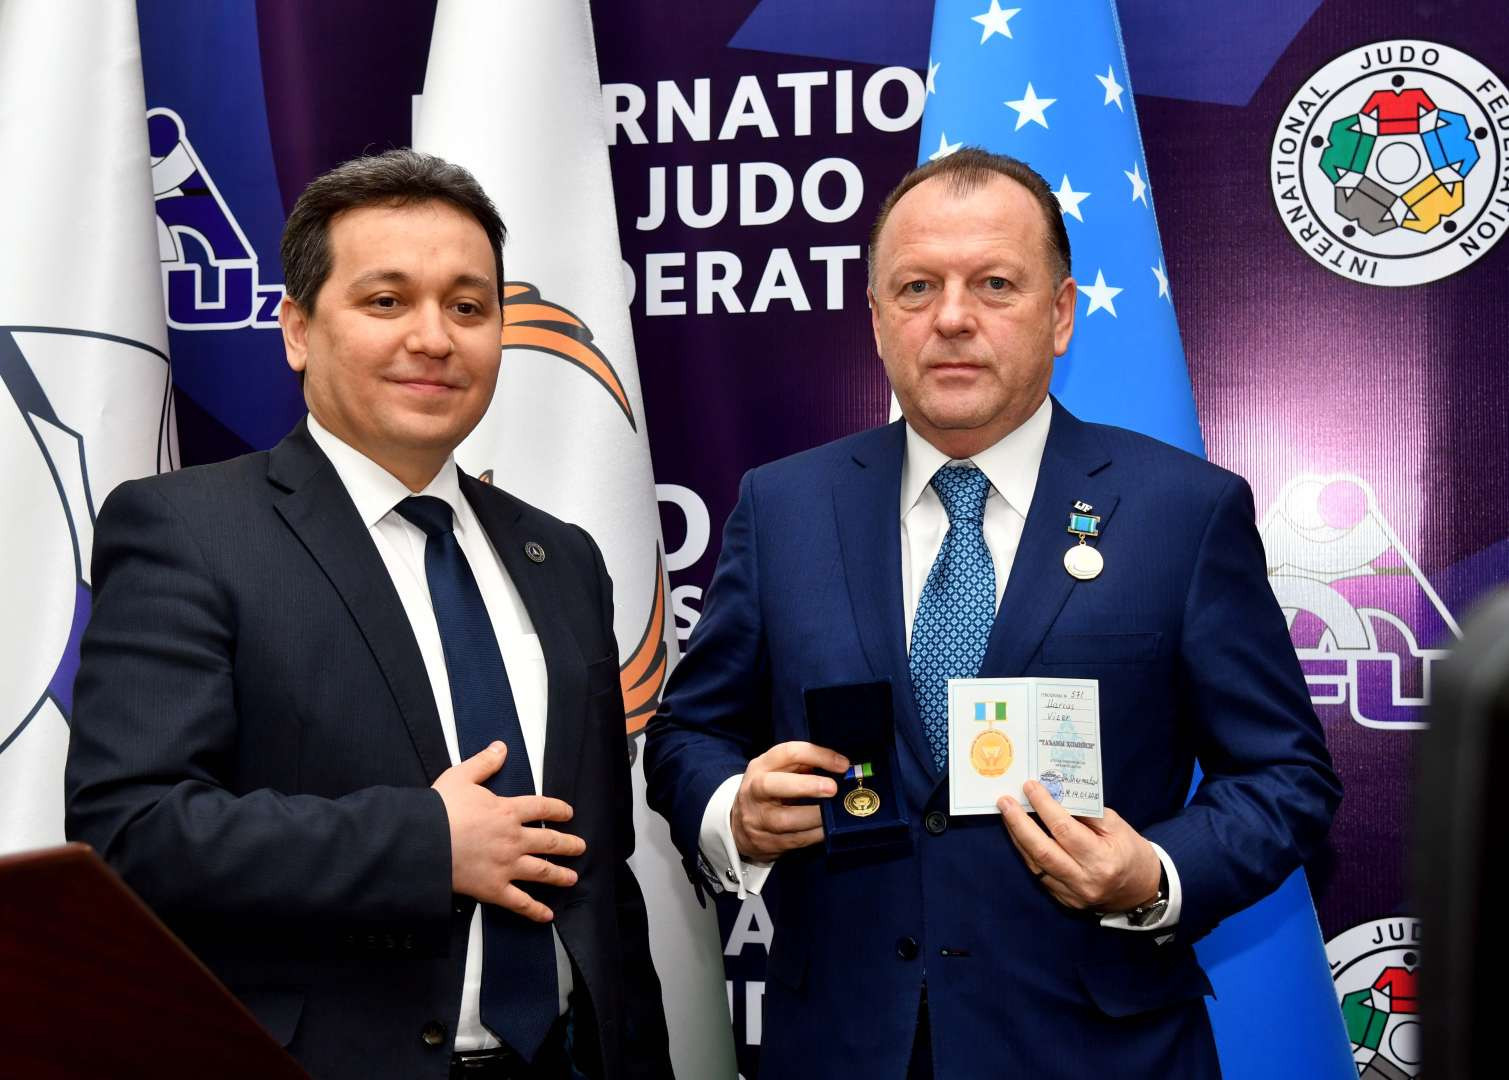 IJF President Marius Vizer, right, was awarded the Award of Sponsor of Education by Uzbekistan's Education Minister Sherzod Shermatov after announcing an expansion of the